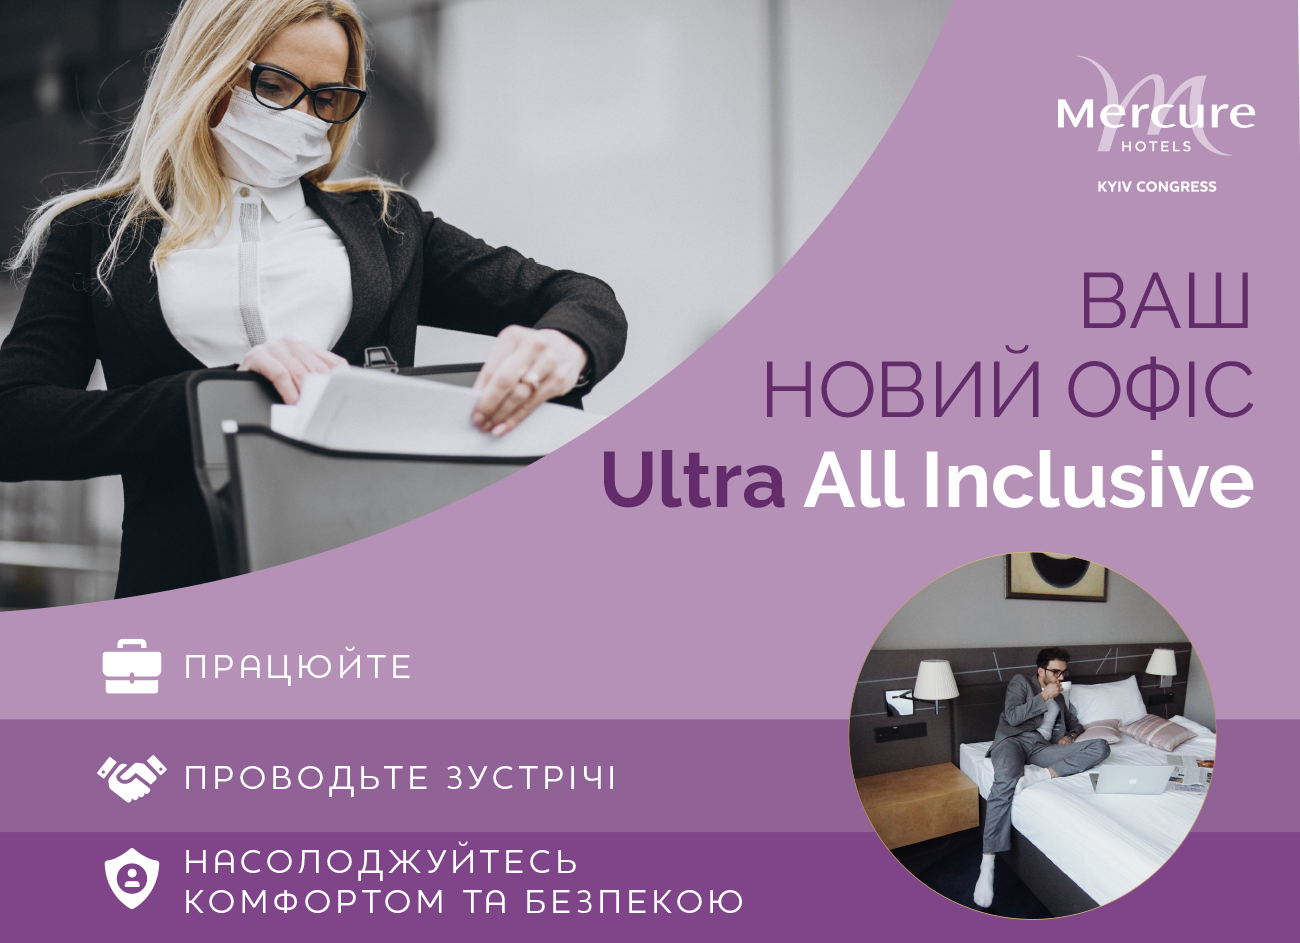 Ваш новый офис Ultra All Inclusive - в Mercure Kyiv Congress!